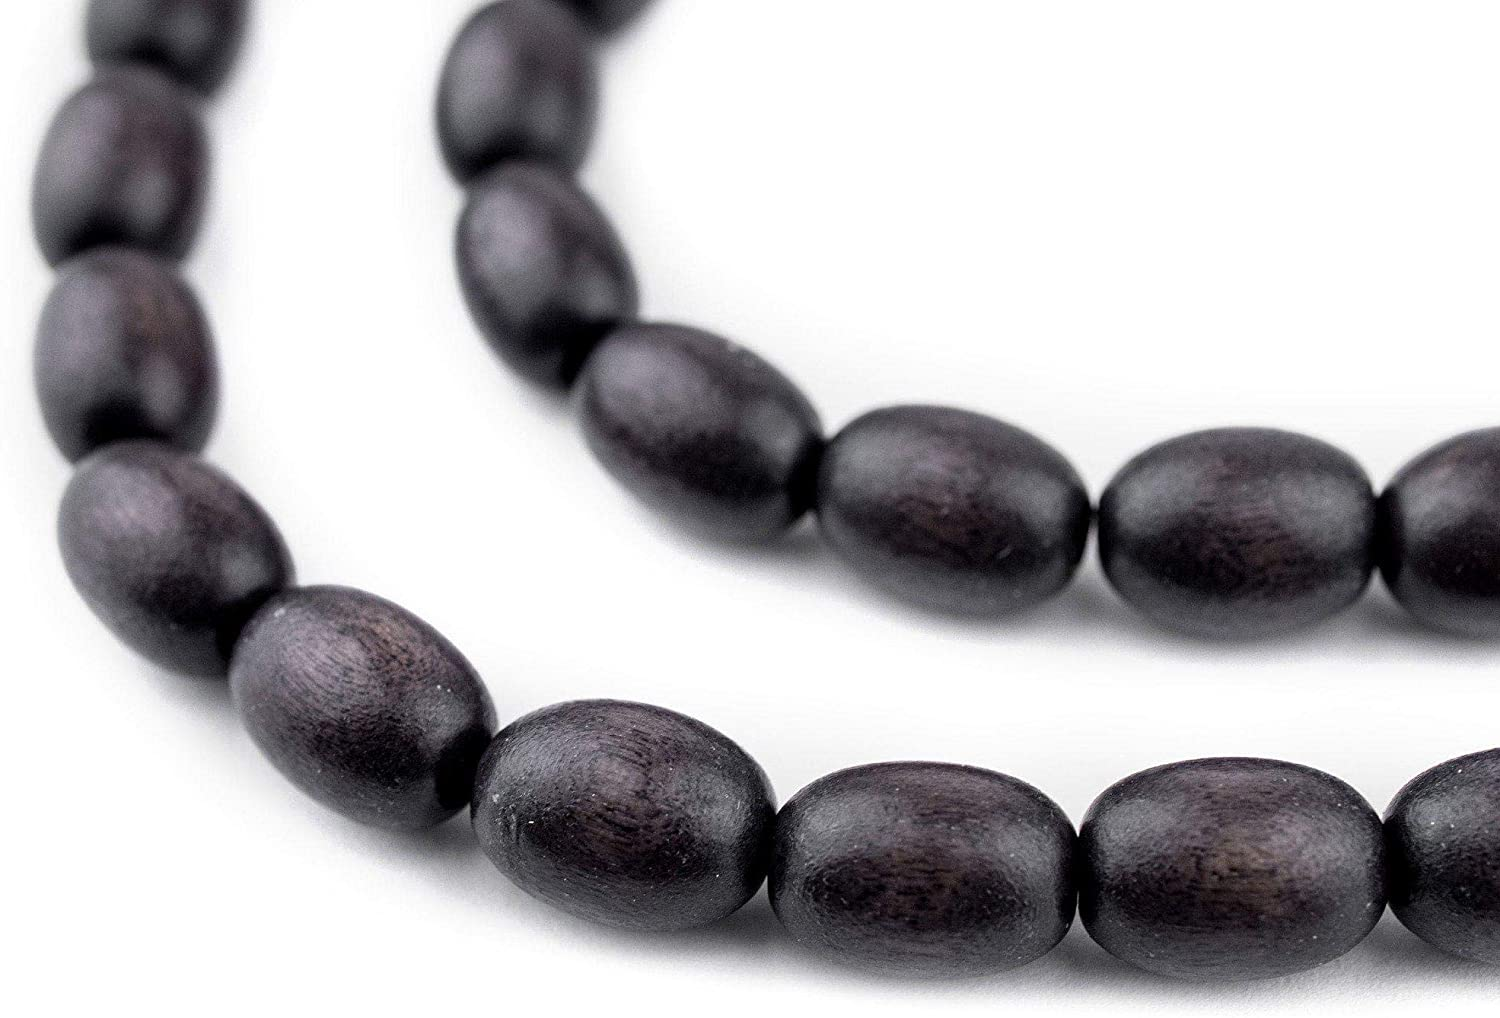 TheBeadChest Dark Grey Oval Natural Wood Beads (15x10mm): Organic Eco-Friendly Wooden Bead Strand for DIY Jewelry, Crafts, Necklace and Bracelet Making